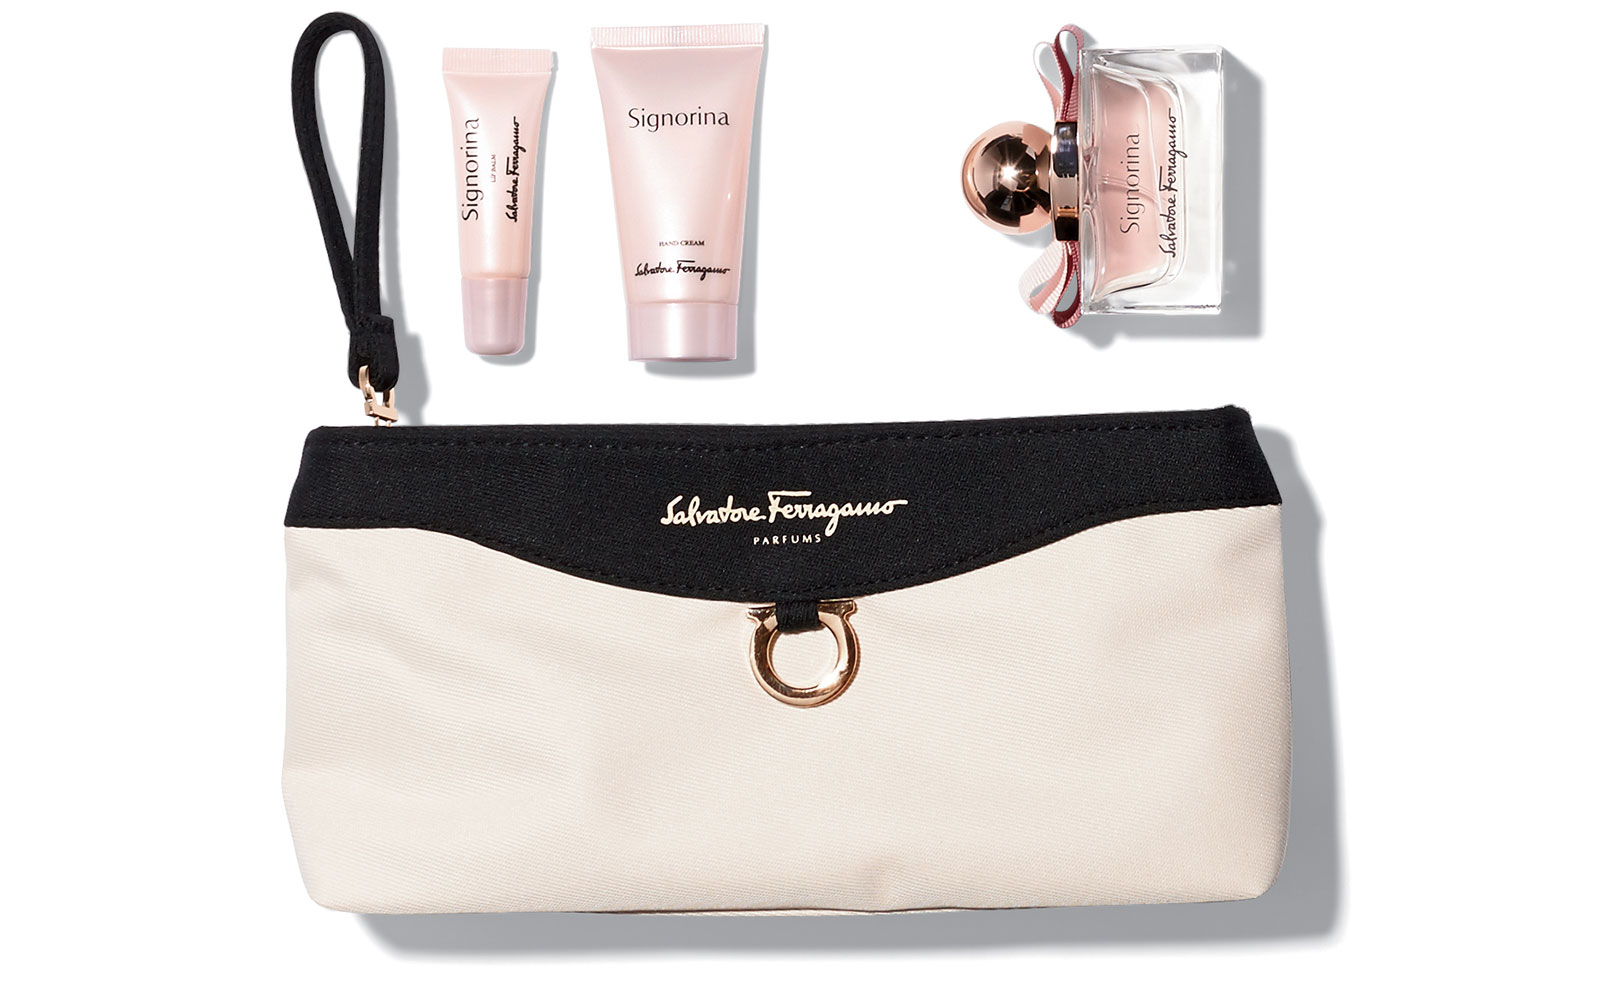 Coolest Airline Amenity Kits: Singapore Airlines - First Class Ferragamo Amenity Kits